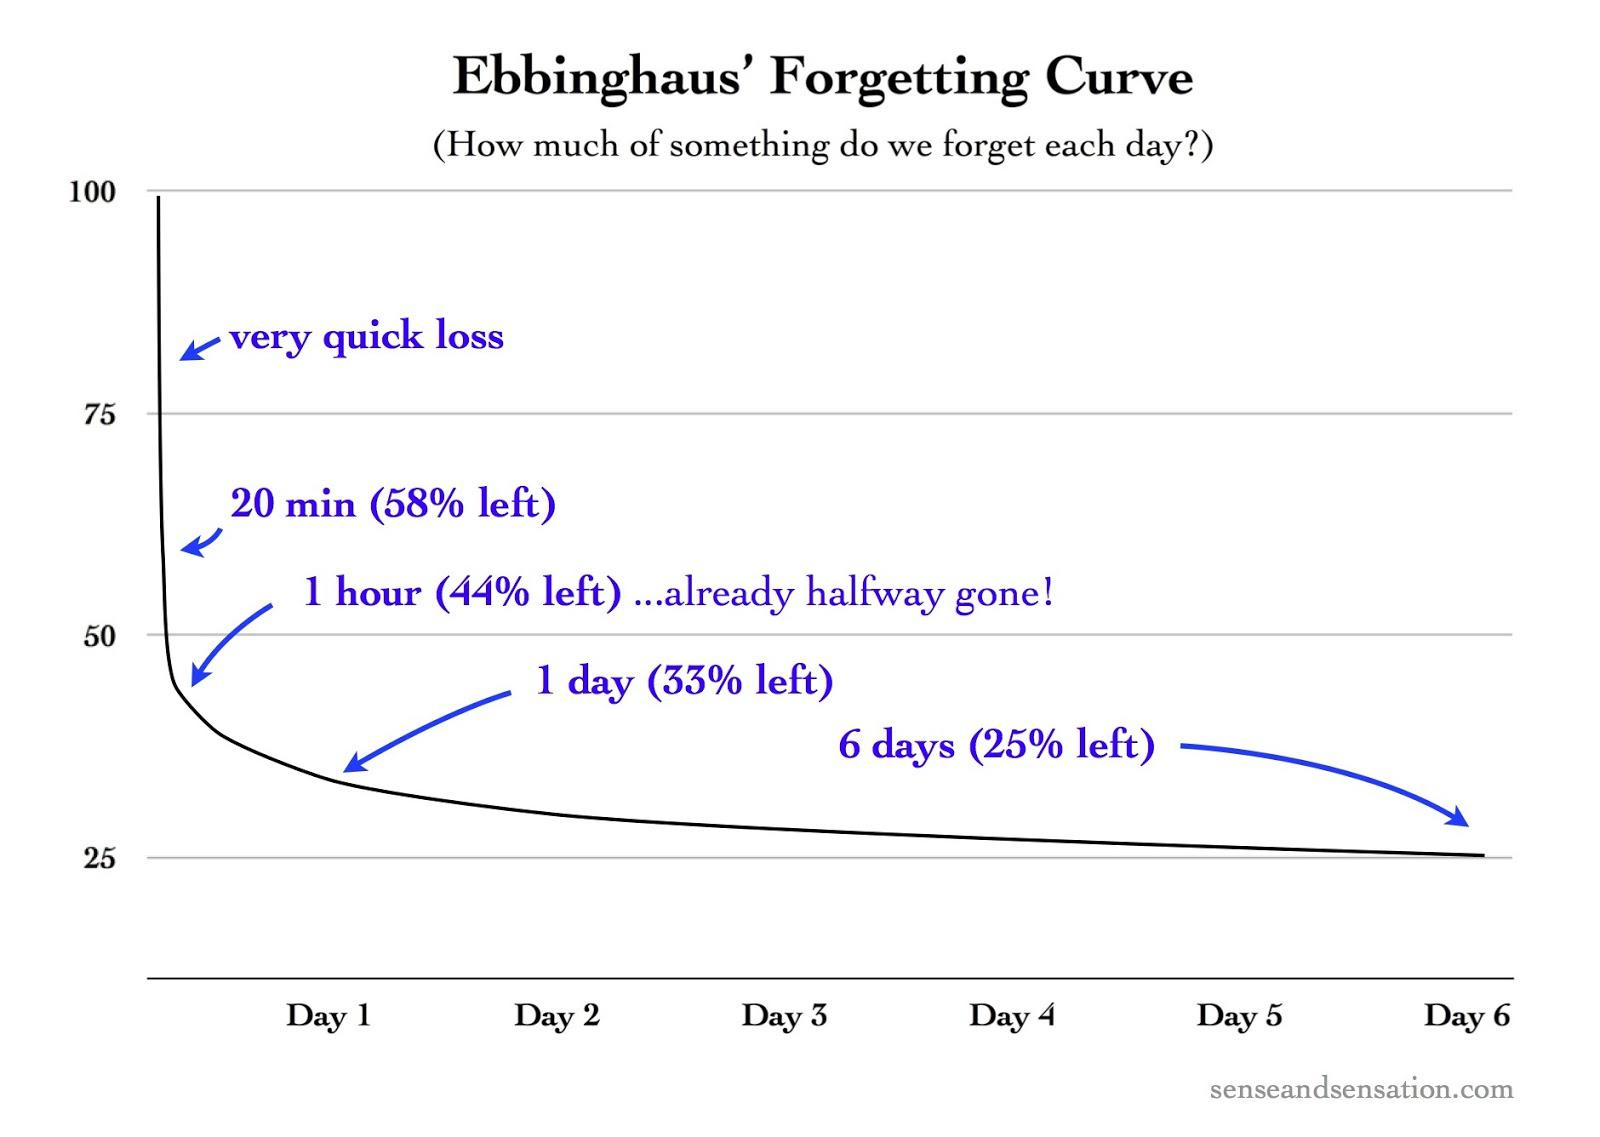 A graph of a steep, exponentially decreasing curve. At 20 minutes after learning, only 58 percent of knowledge is left. At 1 hour, only 44 percent is left. At one day, 33 percent is left, and at 6 days, 25 percent is left.